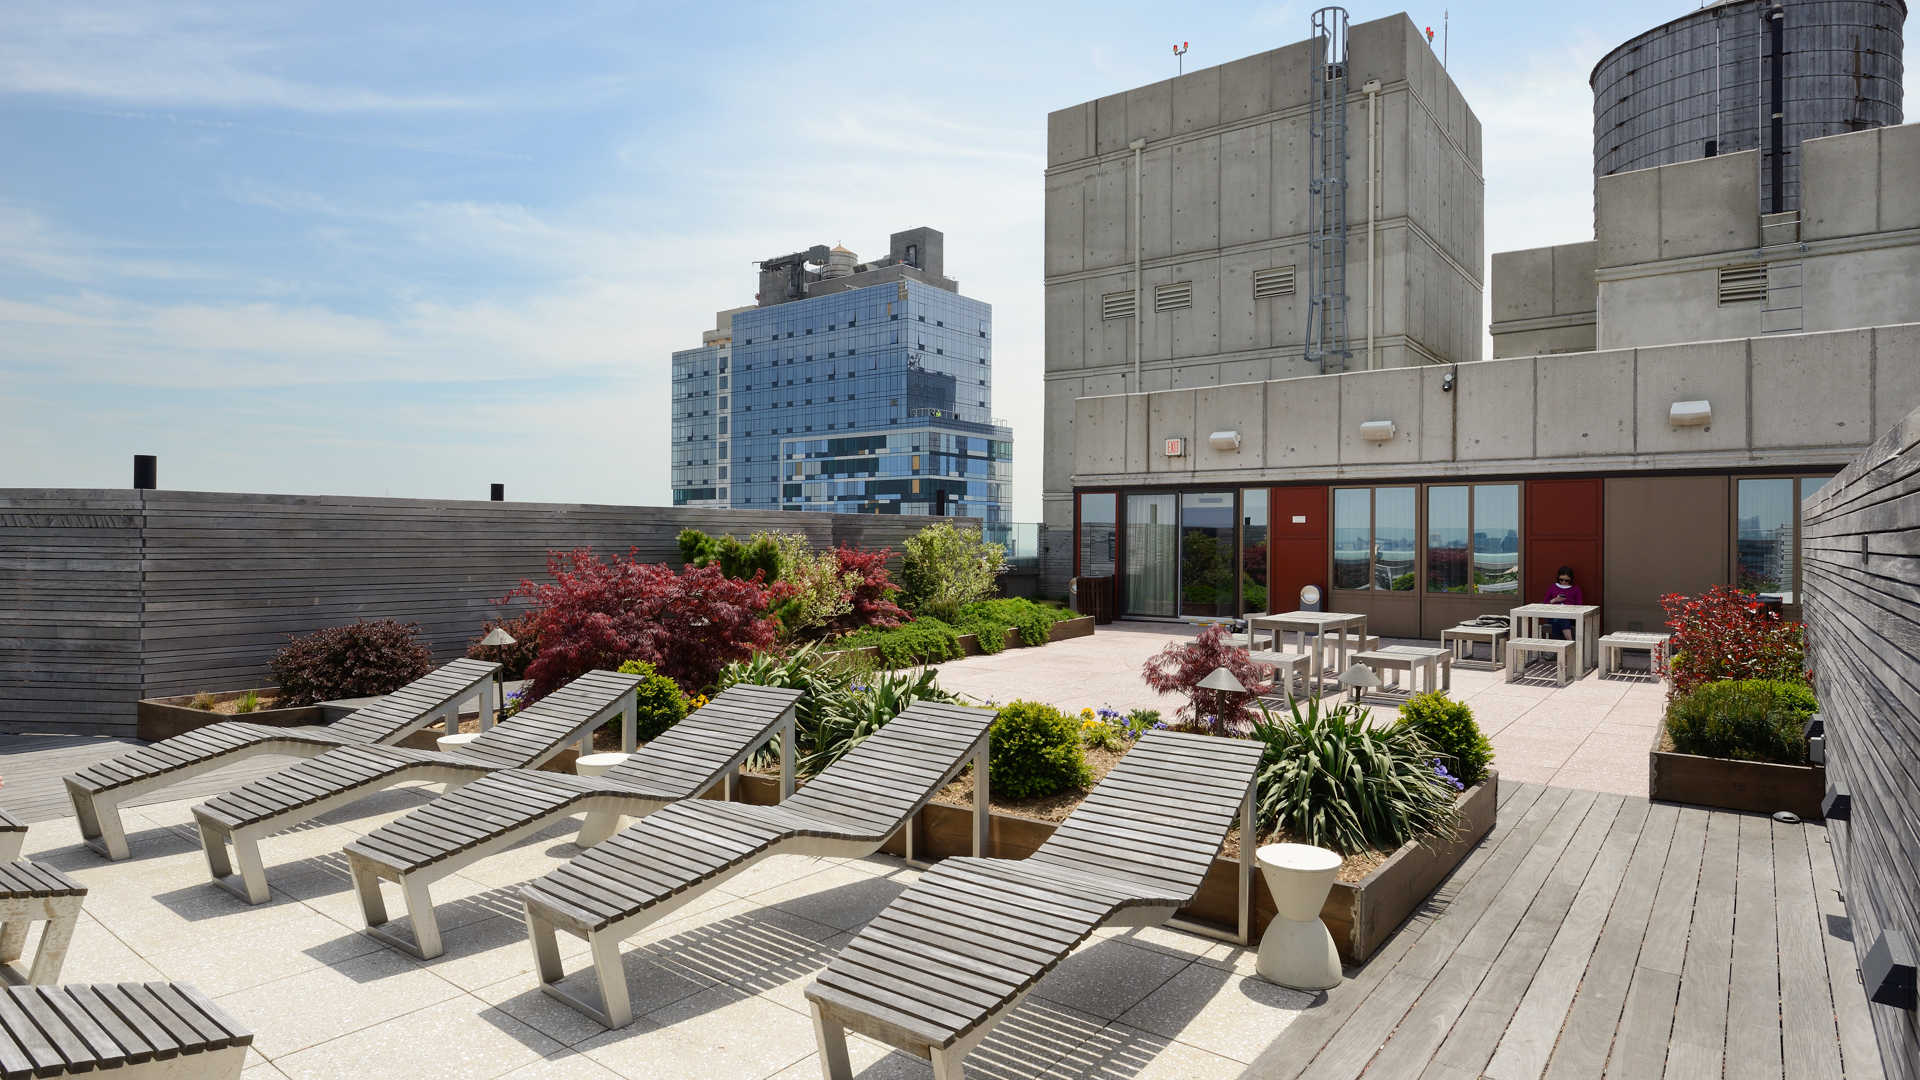 The brooklyner apartments rooftop